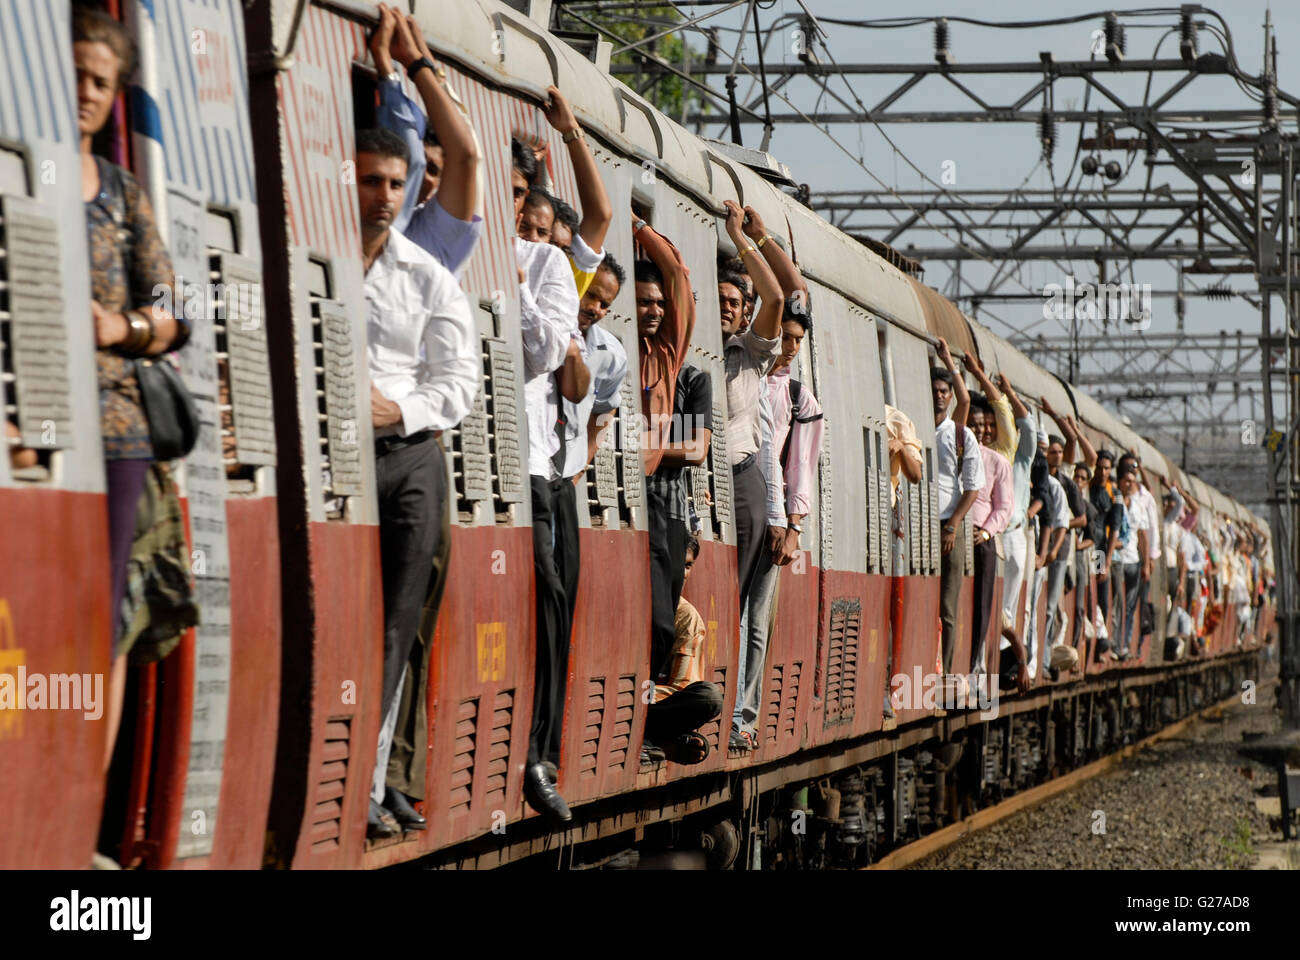 INDIA Mumbai , commuter in city train of western railways / INDIEN Bombay , S-Bahn Zuege befoerdern taeglich Millionen - Stock Image